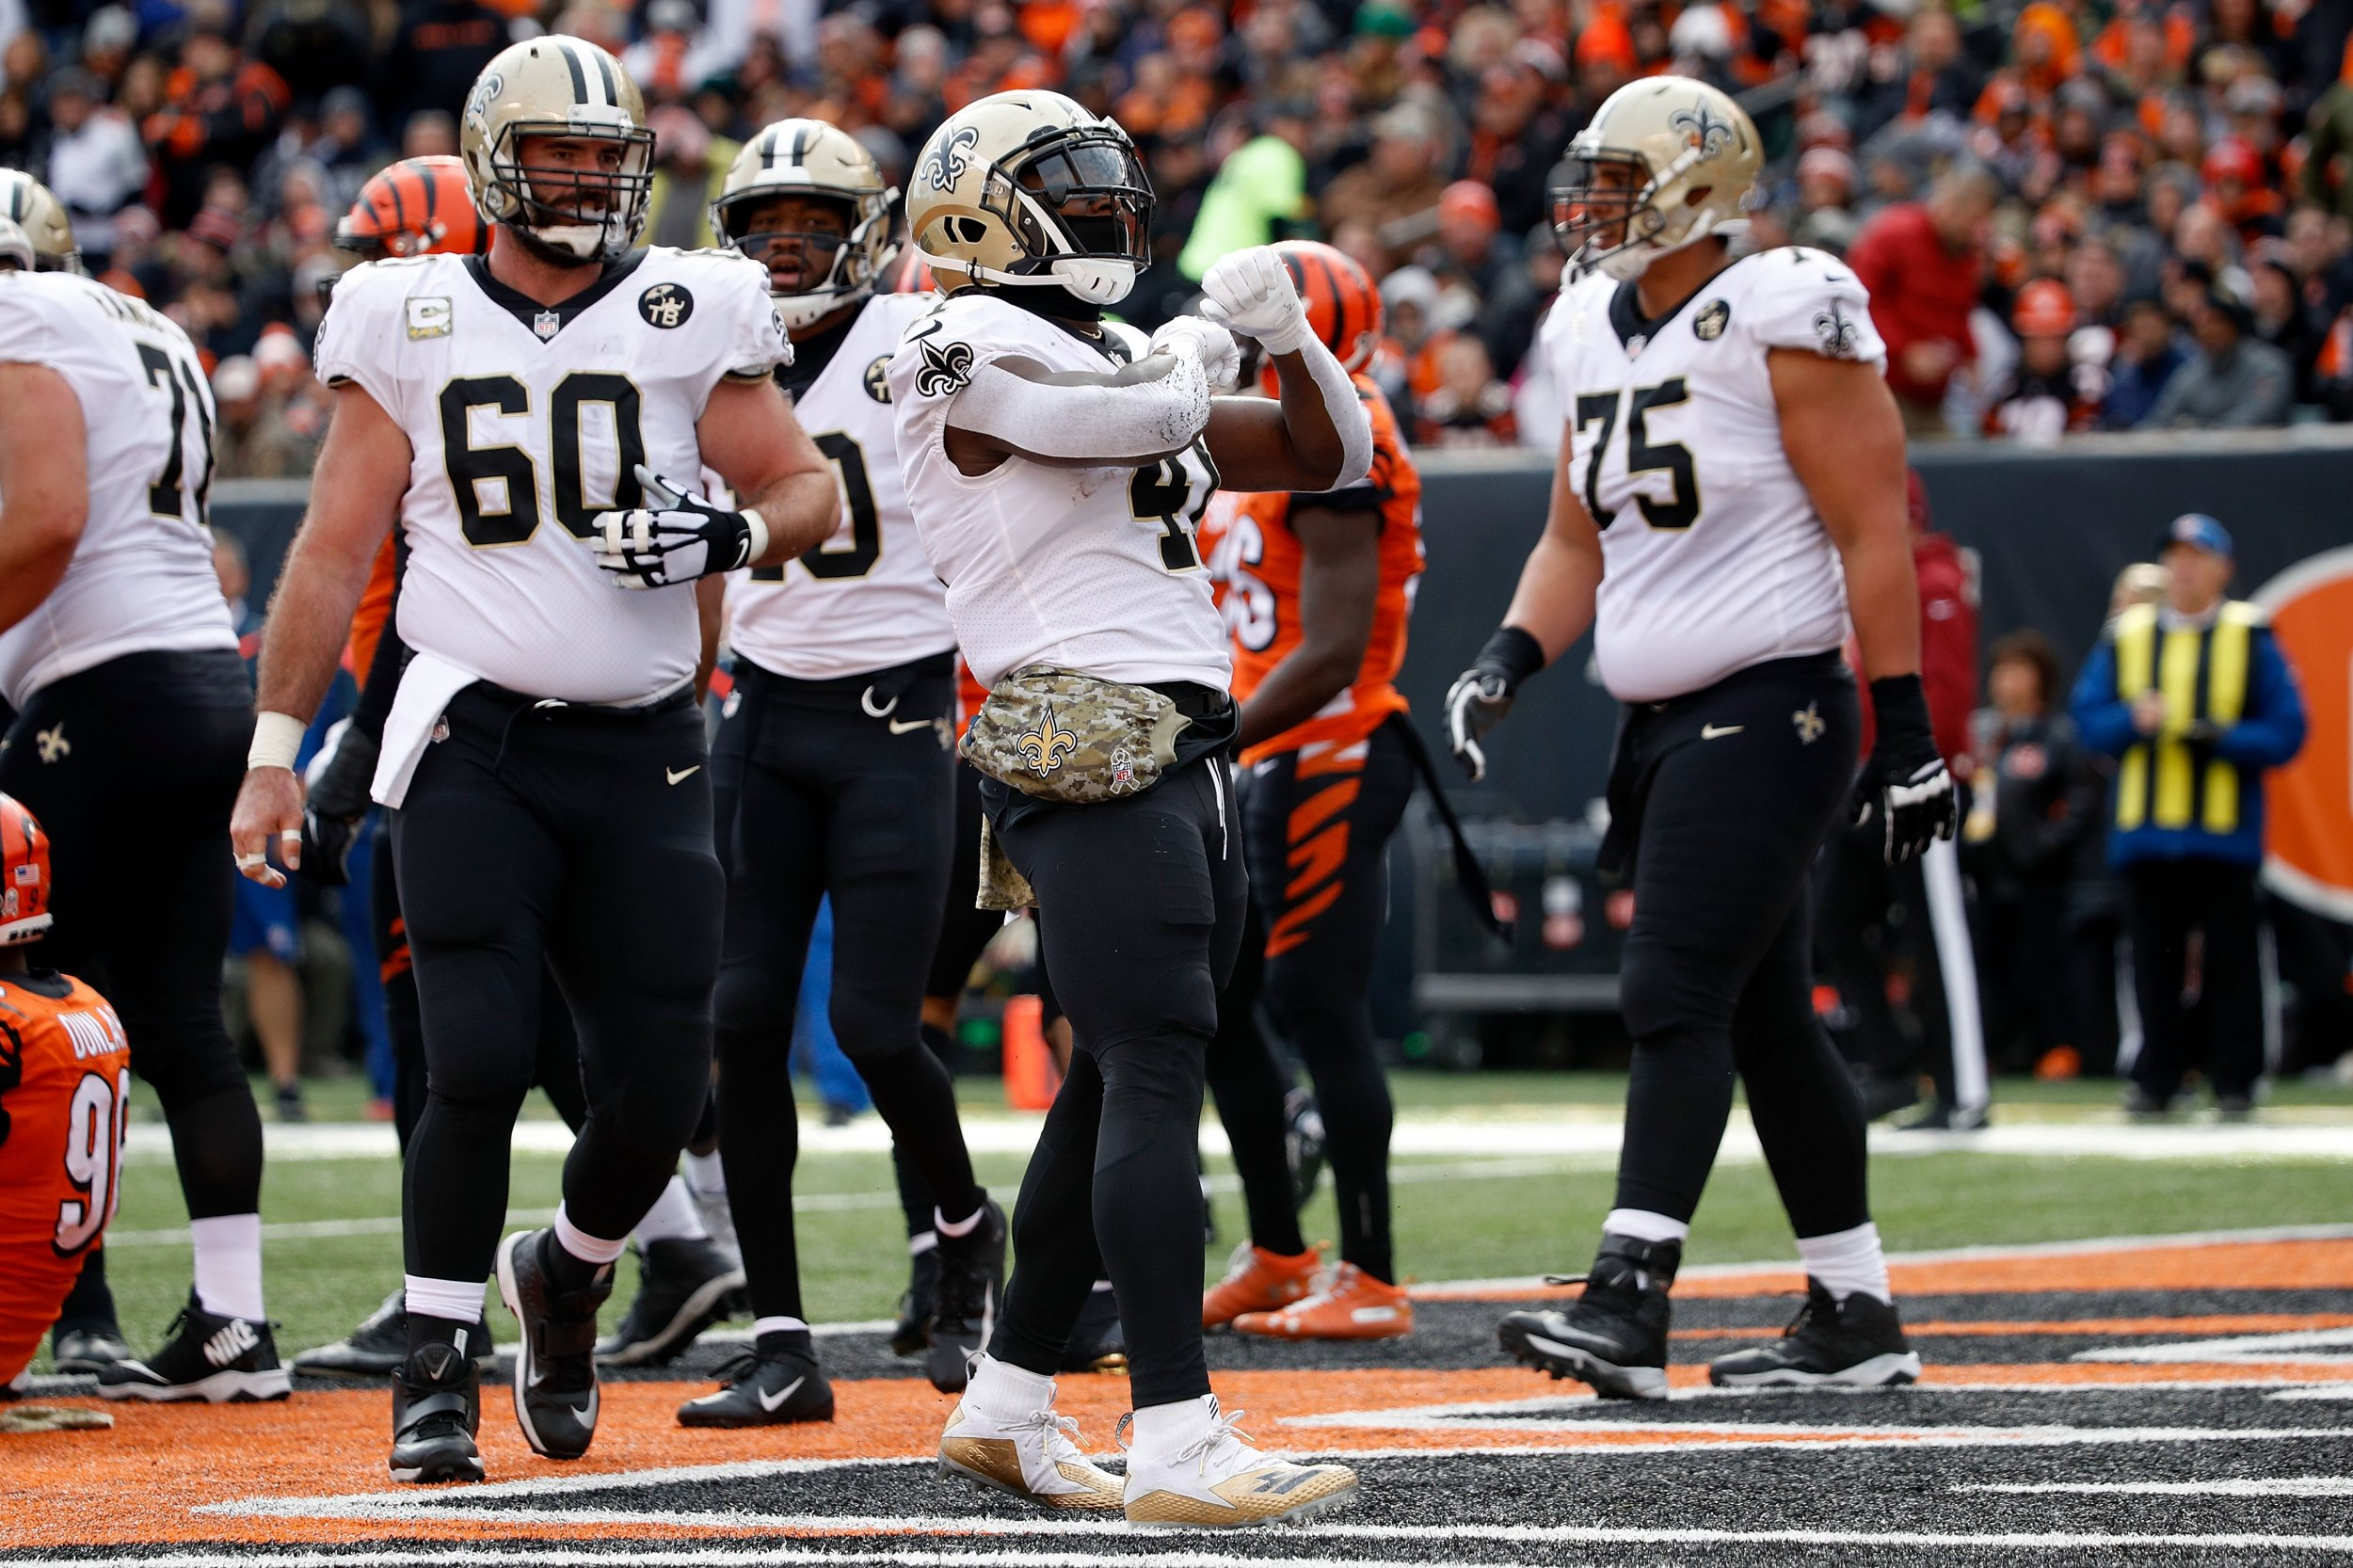 Saints Honor Injured Teammate Dez Bryant With X Celebrations